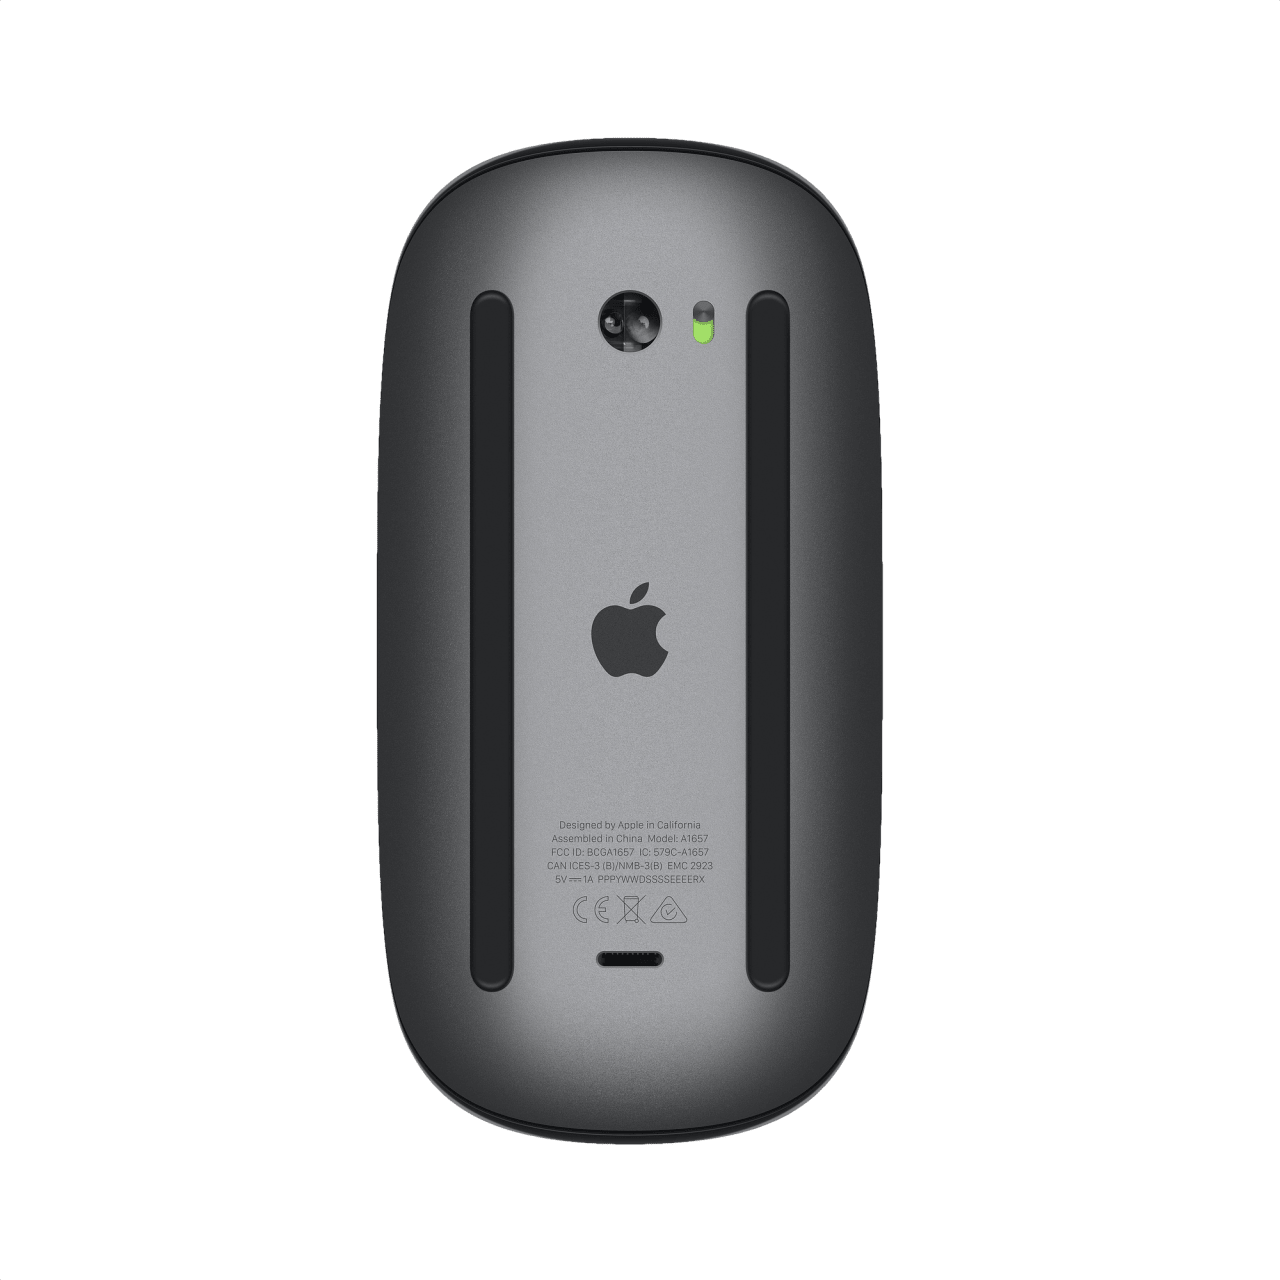 Space Grey Apple Magic Mouse 2.2